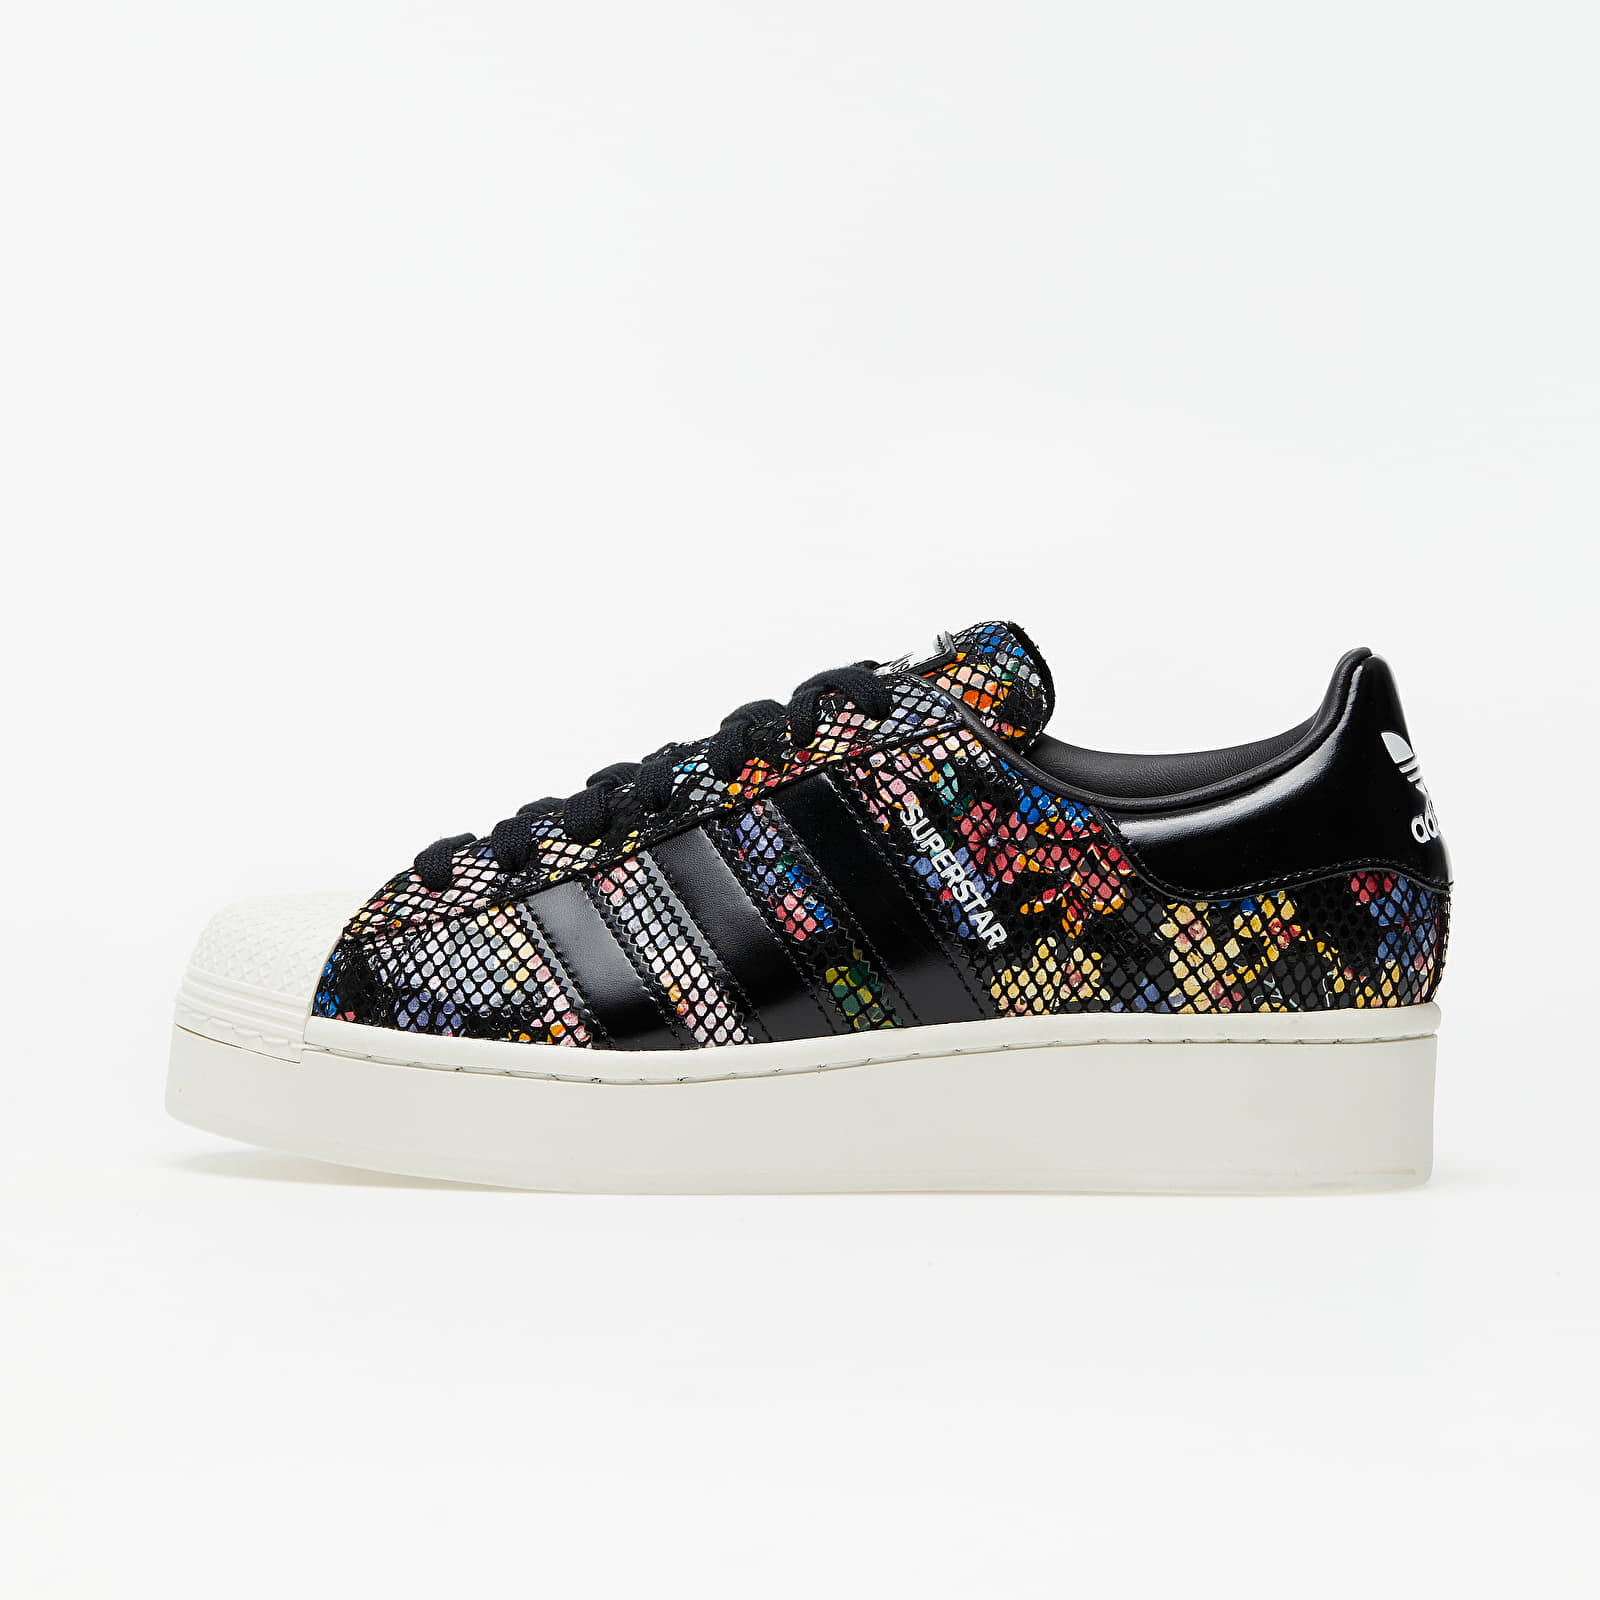 adidas Superstar Bold W Core Black/ Off White/ Red FW3701